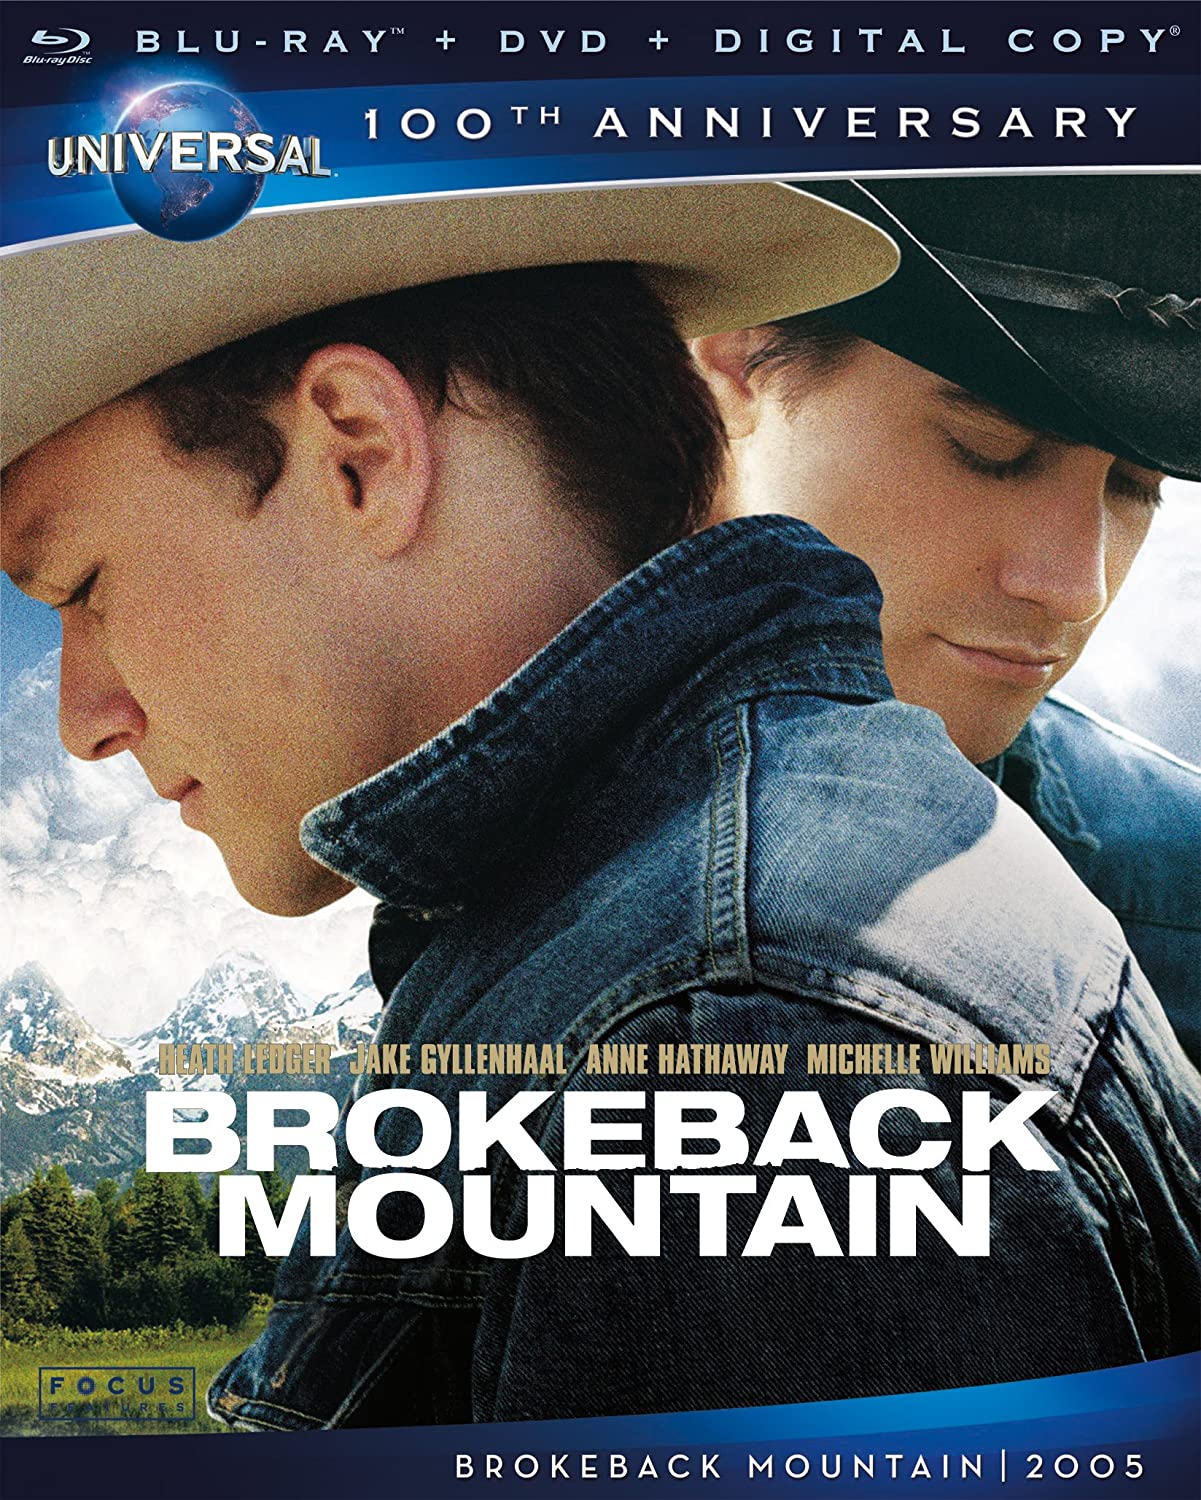 Amazon Com Brokeback Mountain Blu Ray Heath Ledger Jake Gyllenhaal Michelle Williams Anne Hathaway Linda Cardellini Randy Quaid Scott Michael